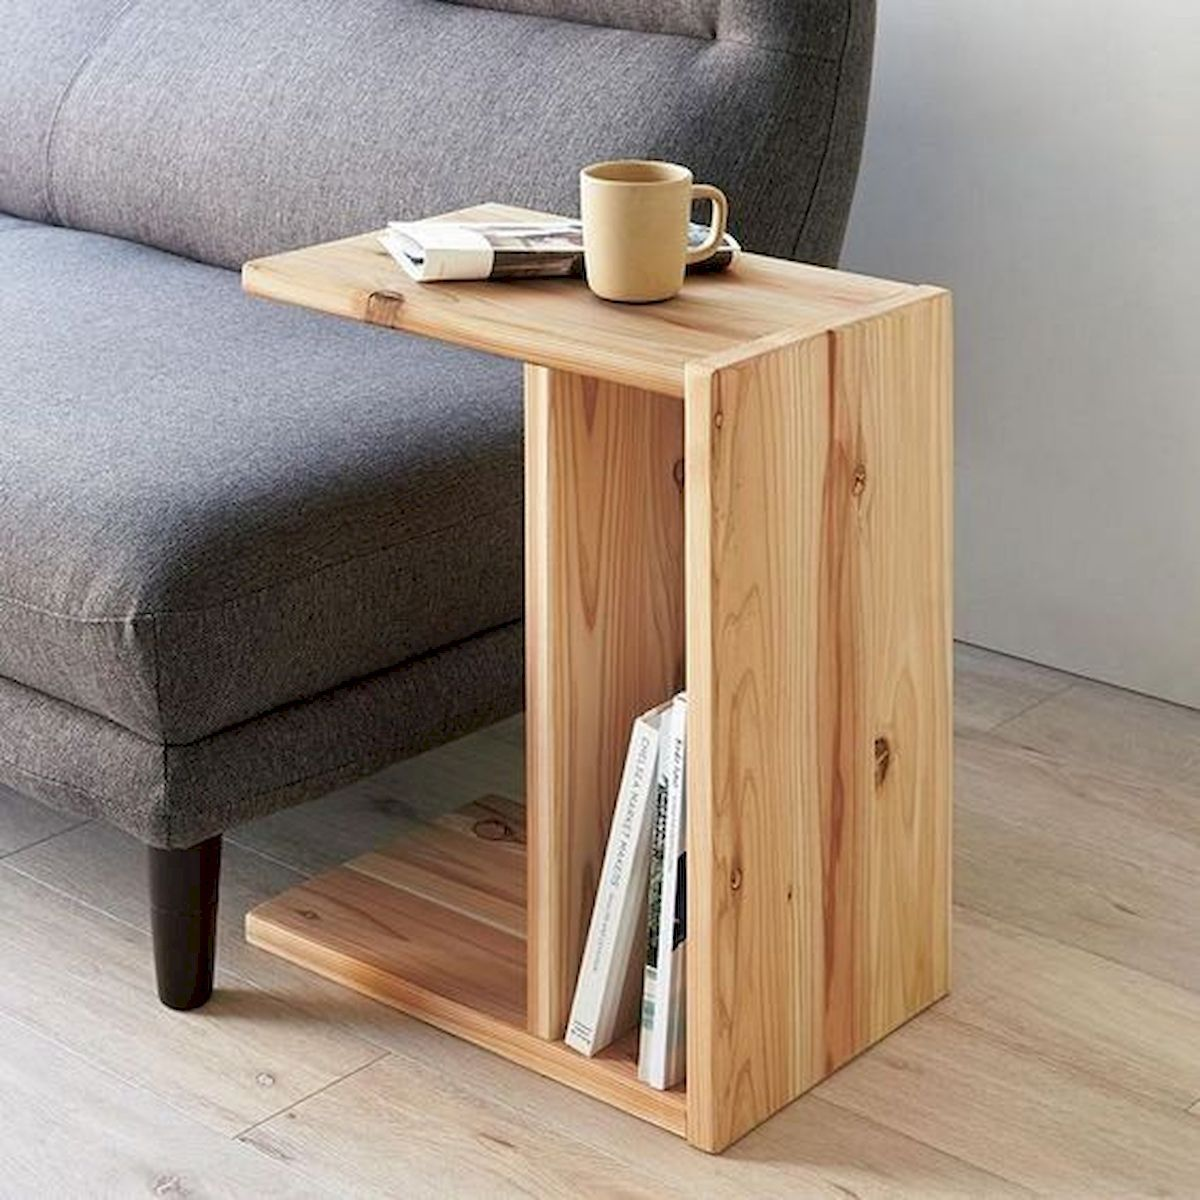 70 suprising diy projects mini pallet